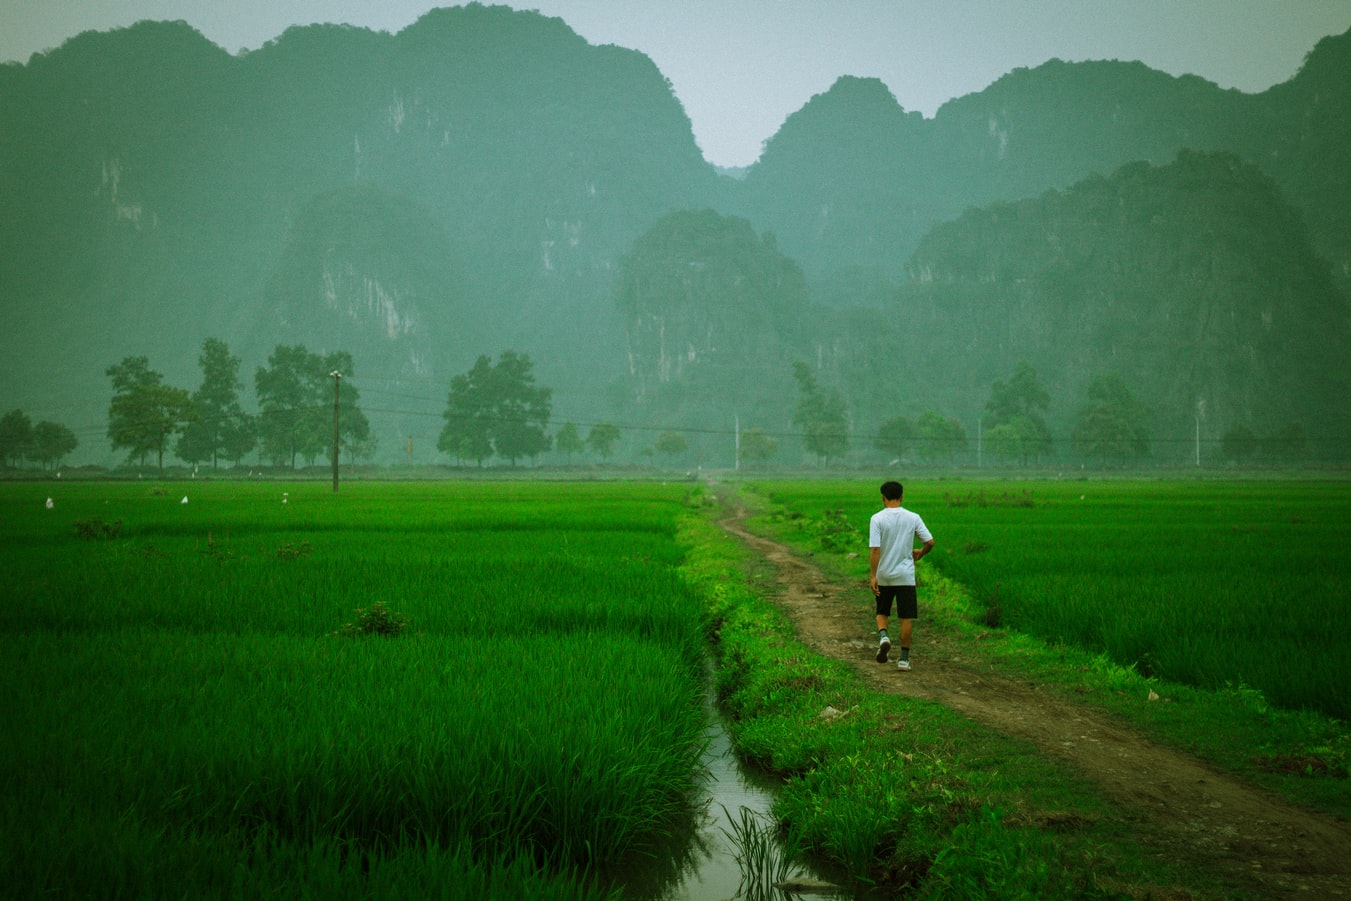 man wearing a white t-shirt walking in a rice paddy with mountains in the background